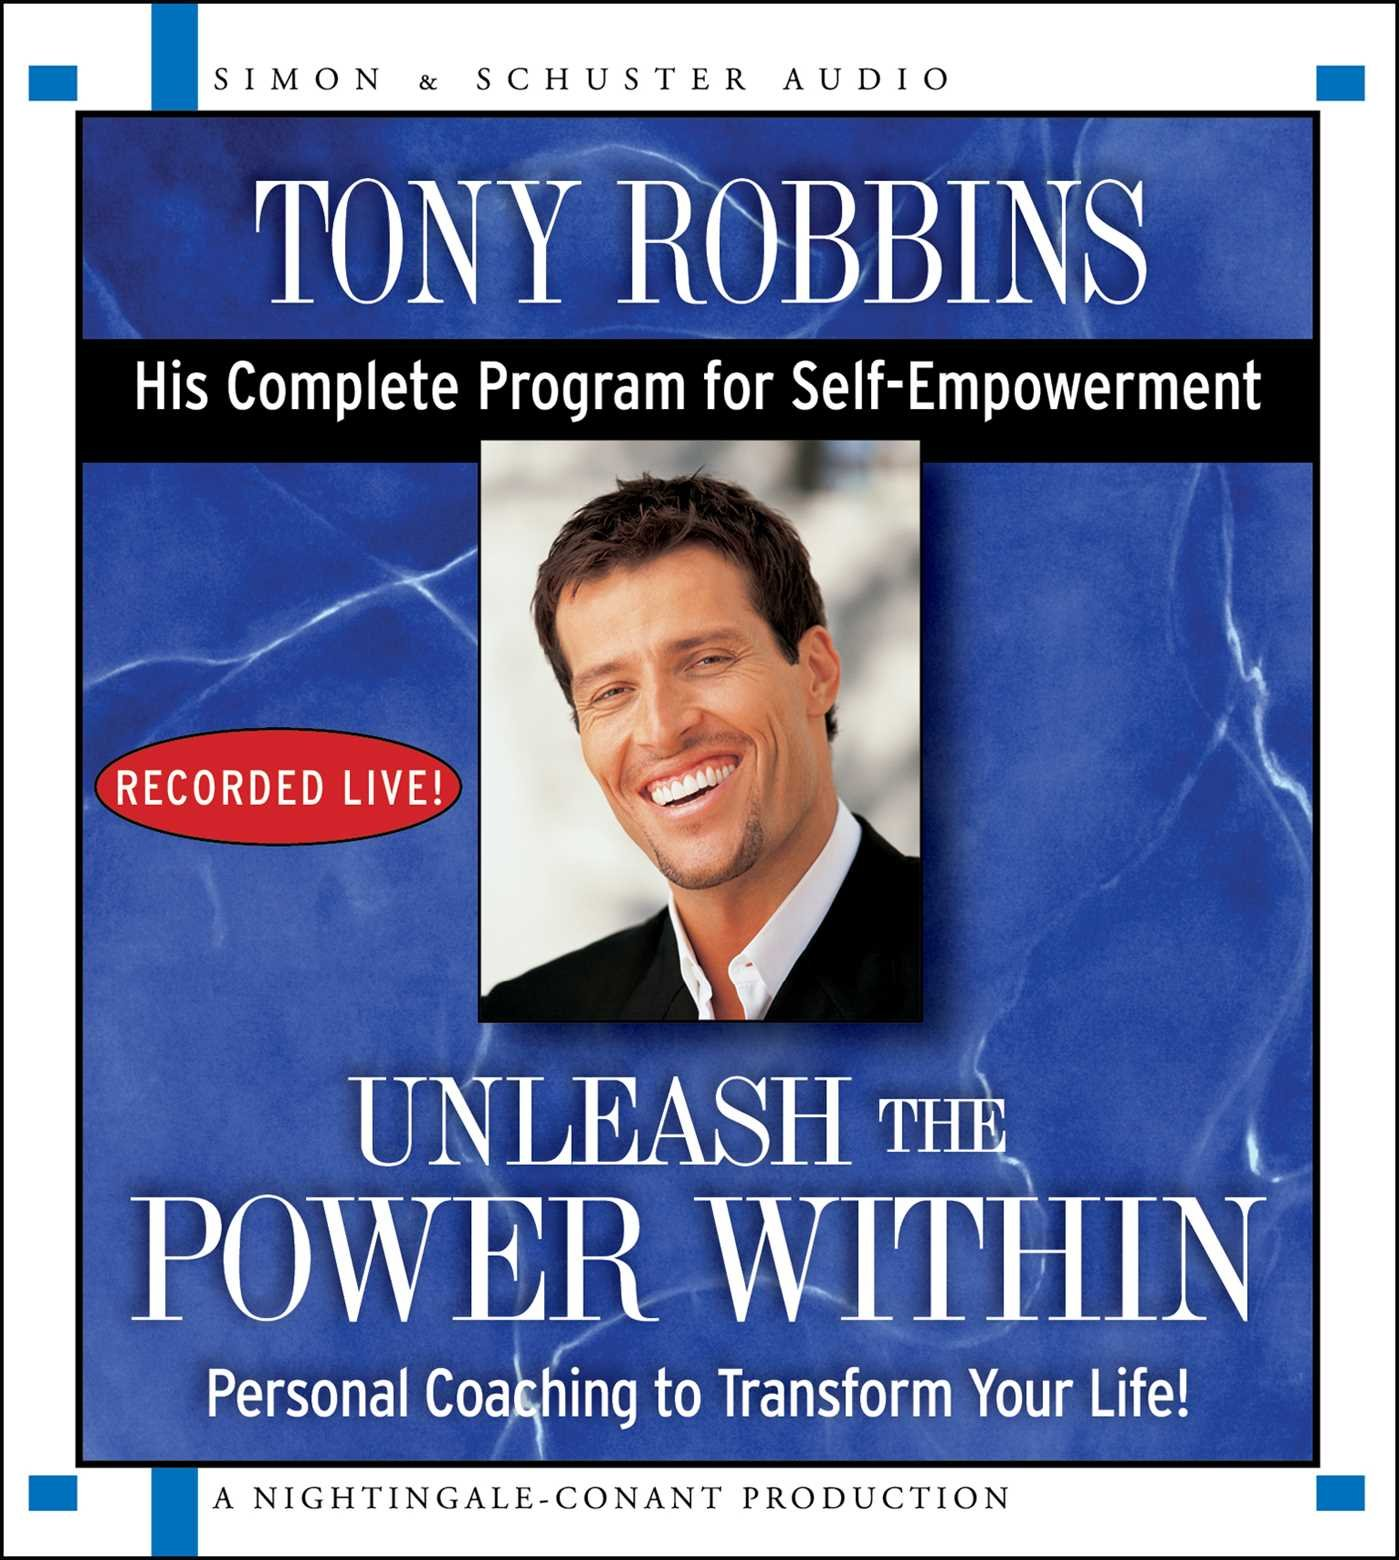 Unleash the Power Within: Personal Coaching to Transform Your Life! - Tony Robbins - отзывы на аудиокнигу